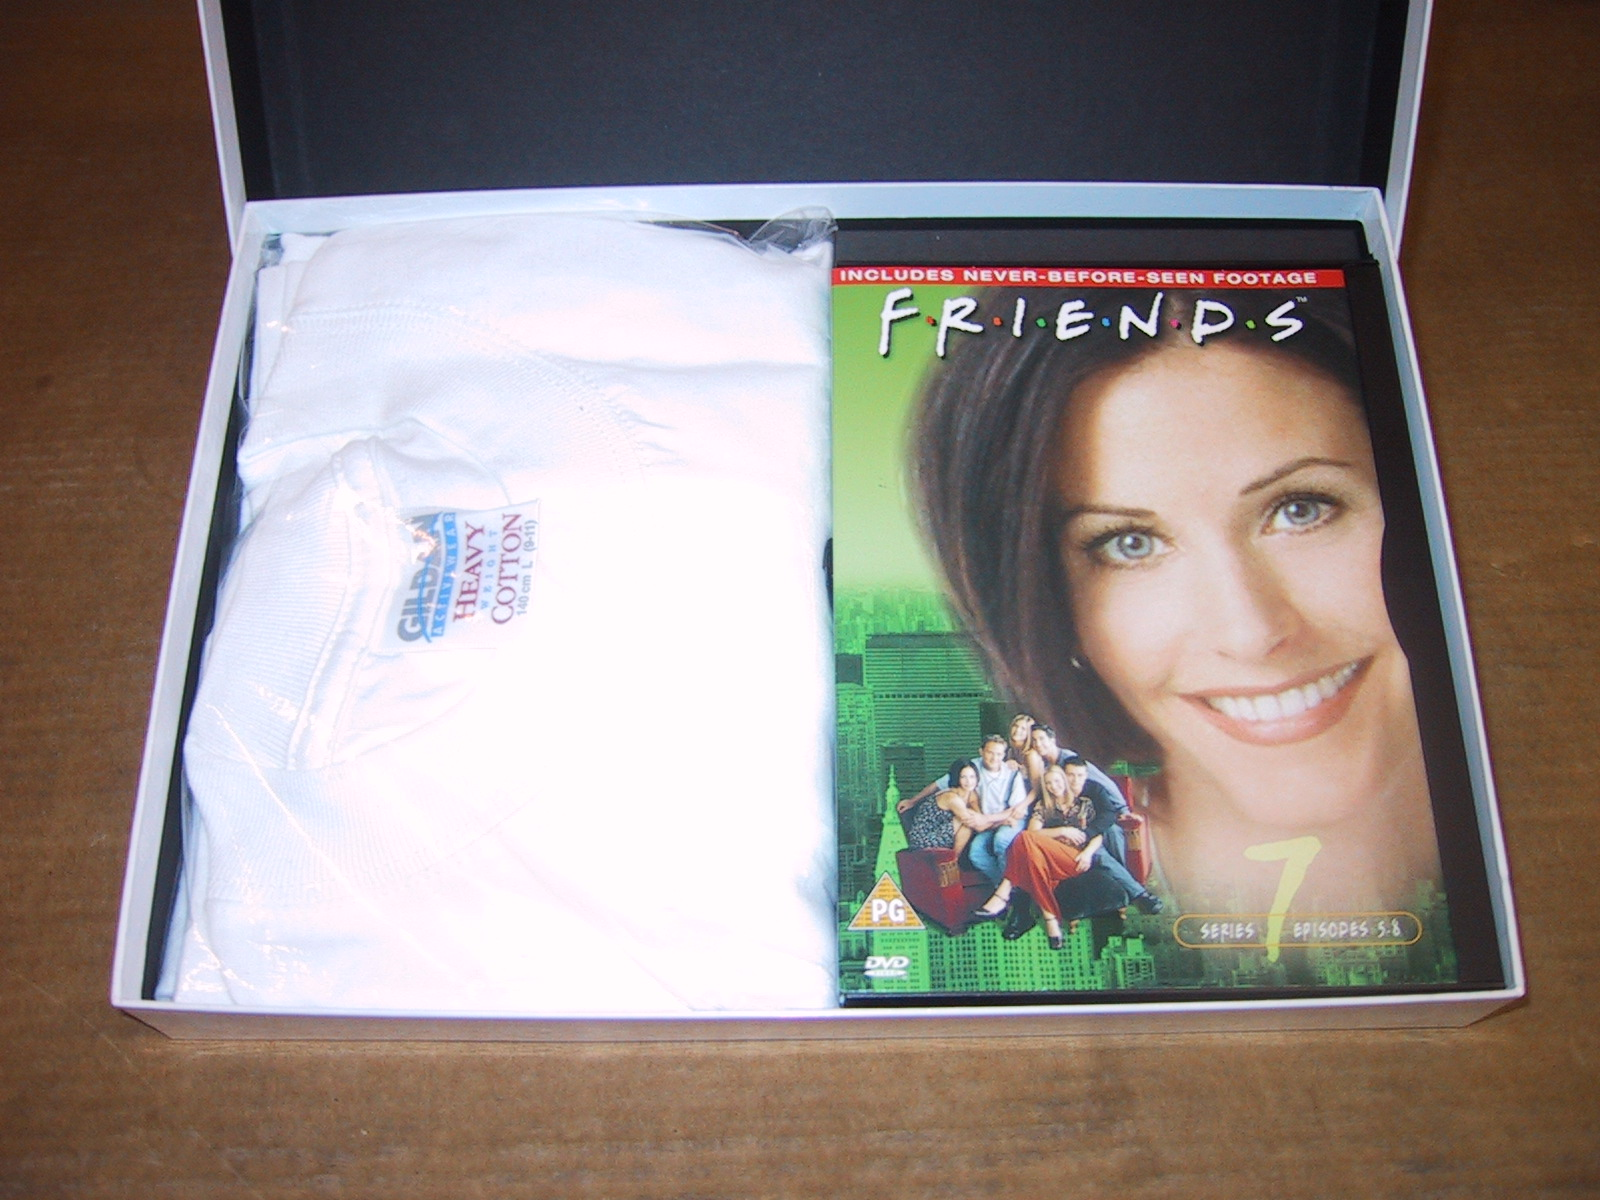 DVD and boxed t-shirt